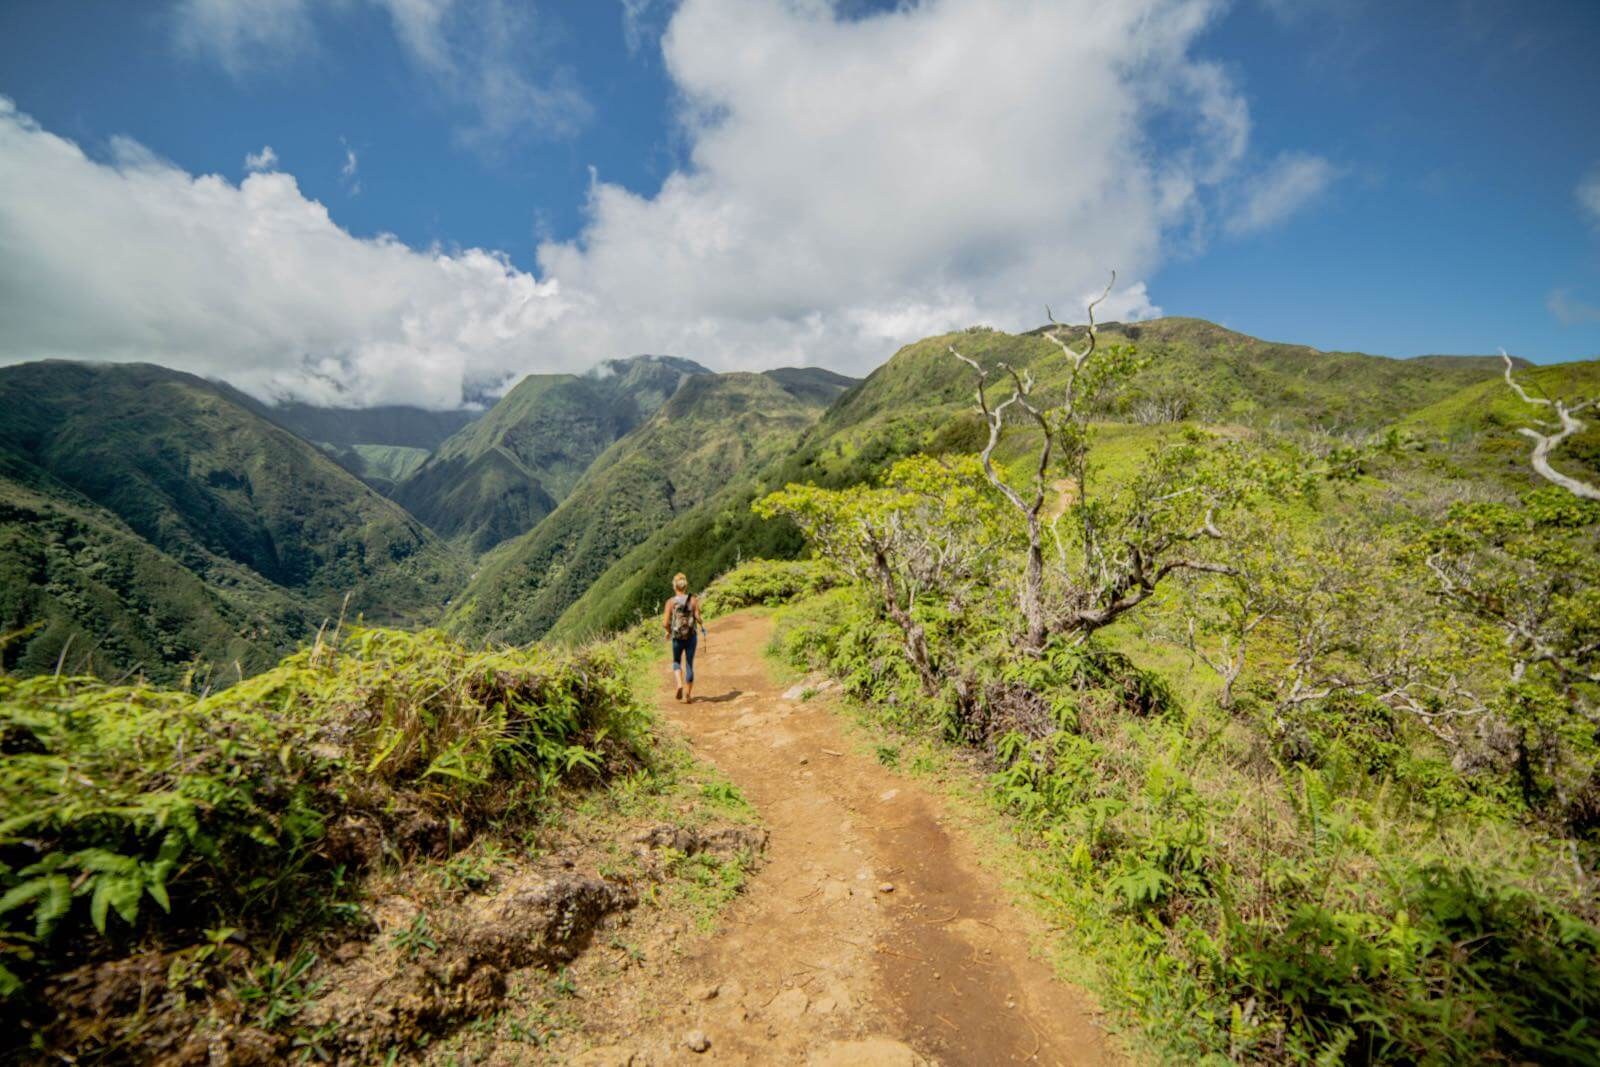 A girl hiking on the Waihee Ridge Trail on Maui